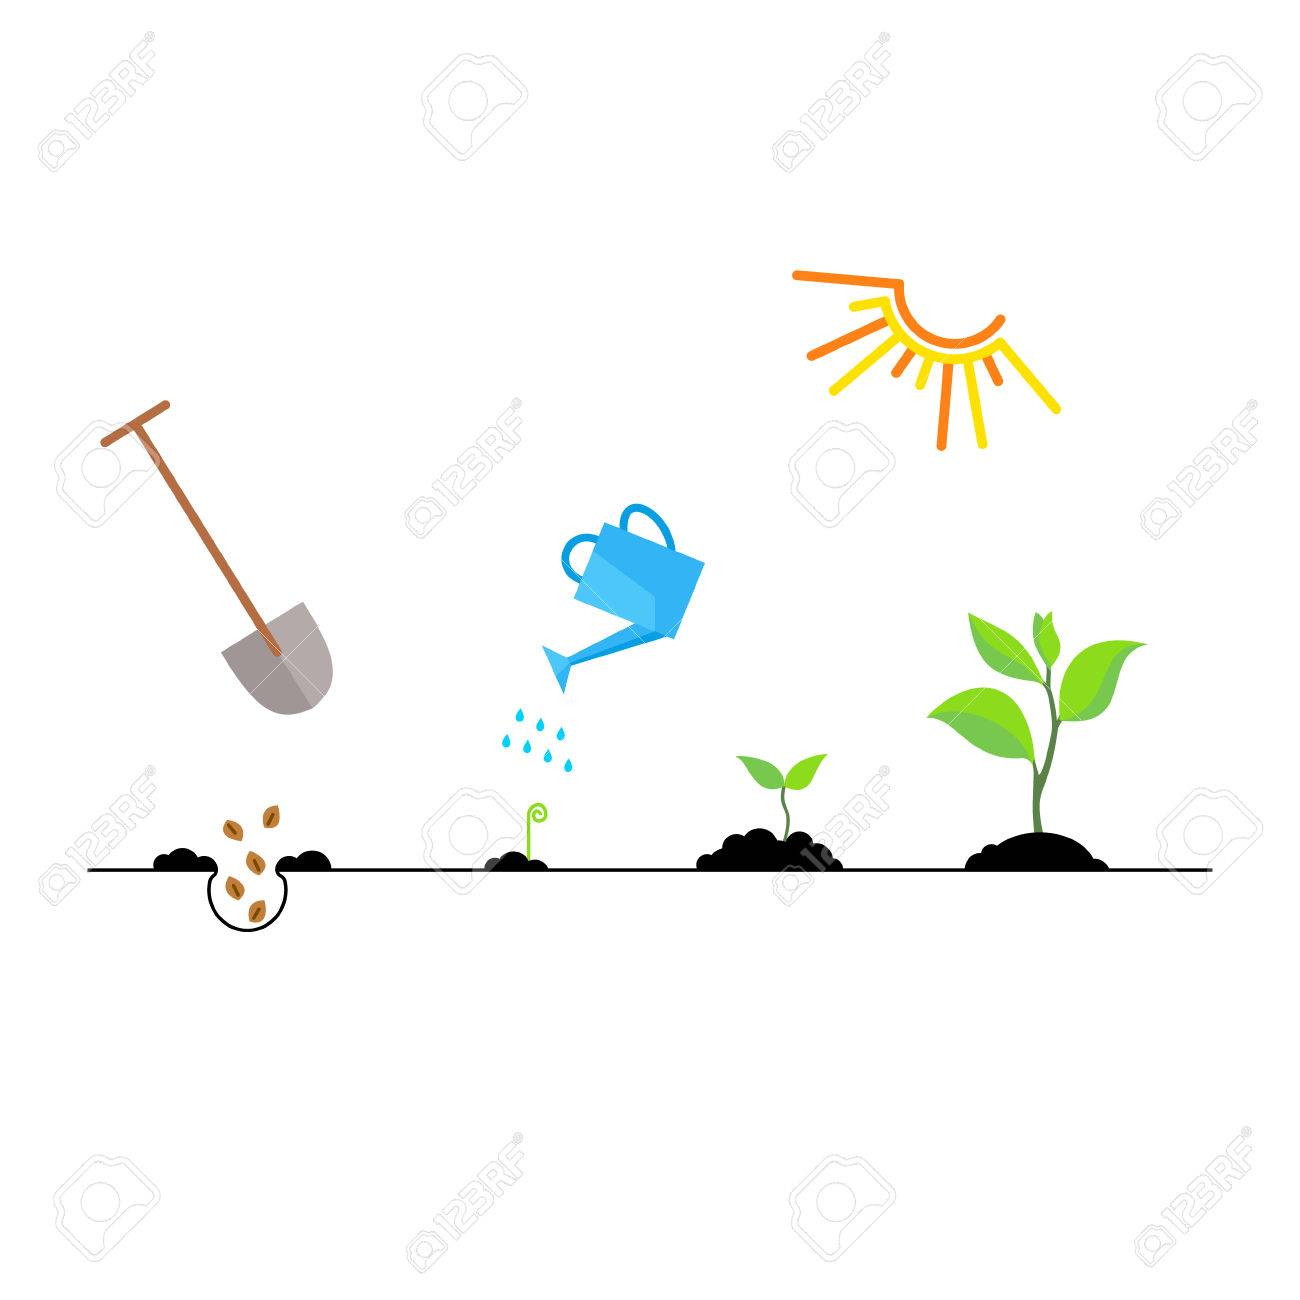 Line sprout and plant growing. Linear nature leaf, grow tree, garden and flower, organic gardening, eco flora. Timeline infographic of planting tree process, business concept flat design. - 53796265